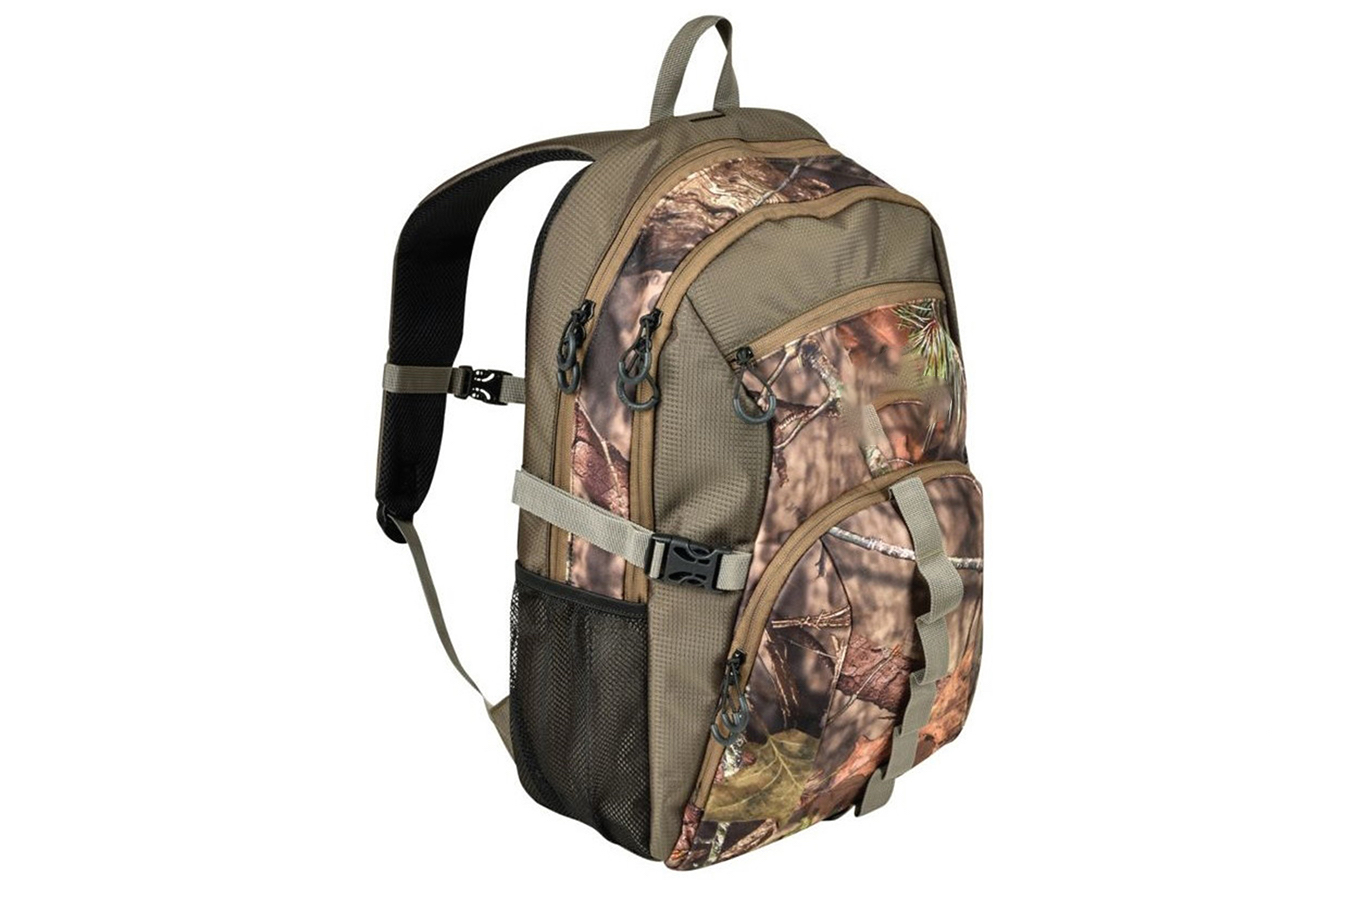 HQ DAY PACK - 24 LITRES - BREAK-UP COUNTRY CAMO